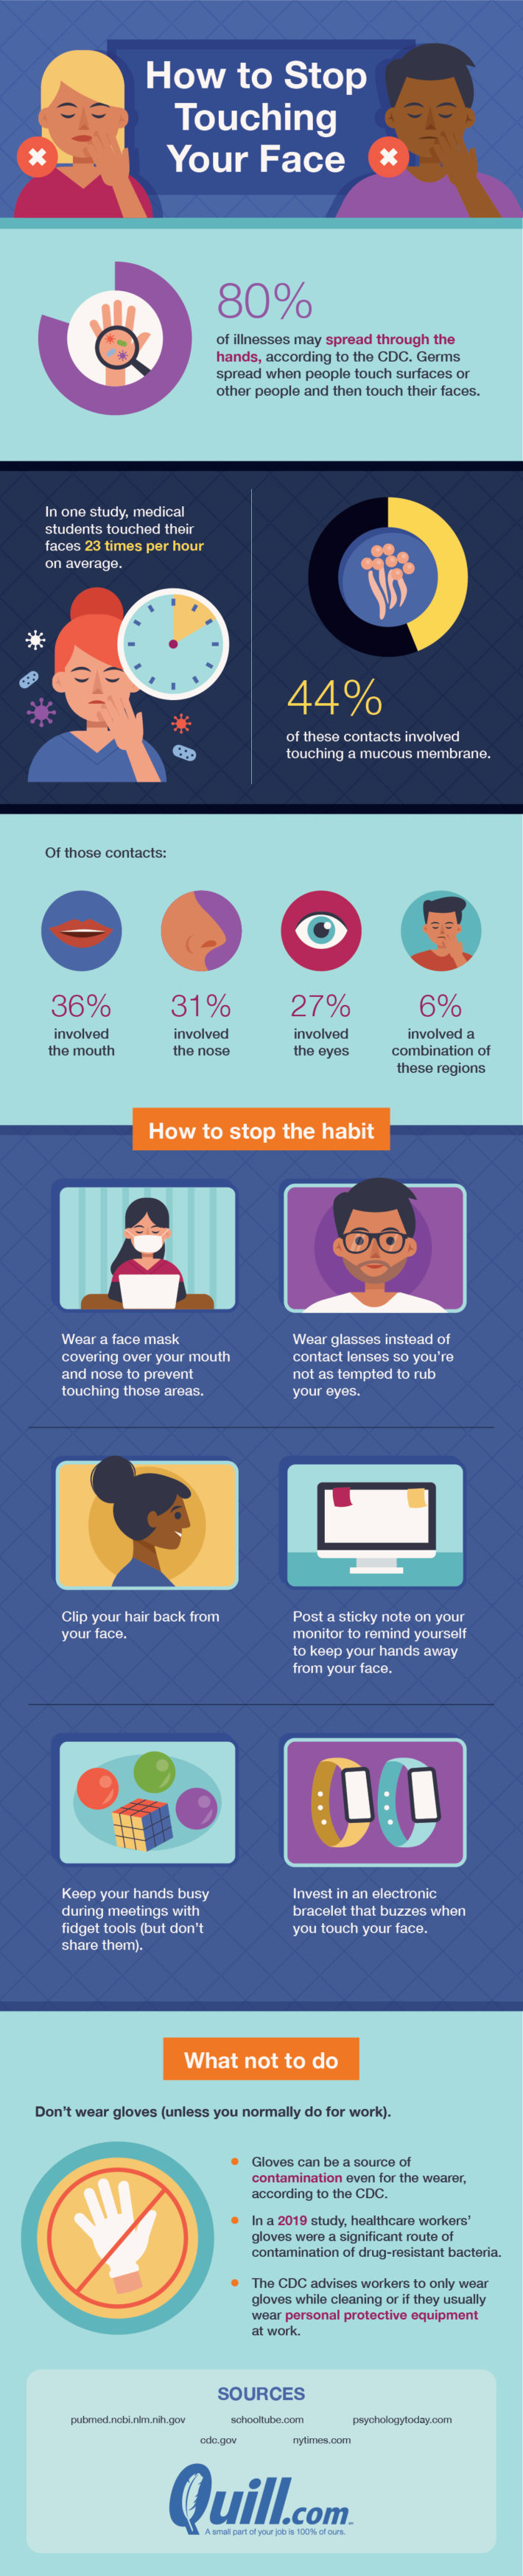 How to stop touching your face at work